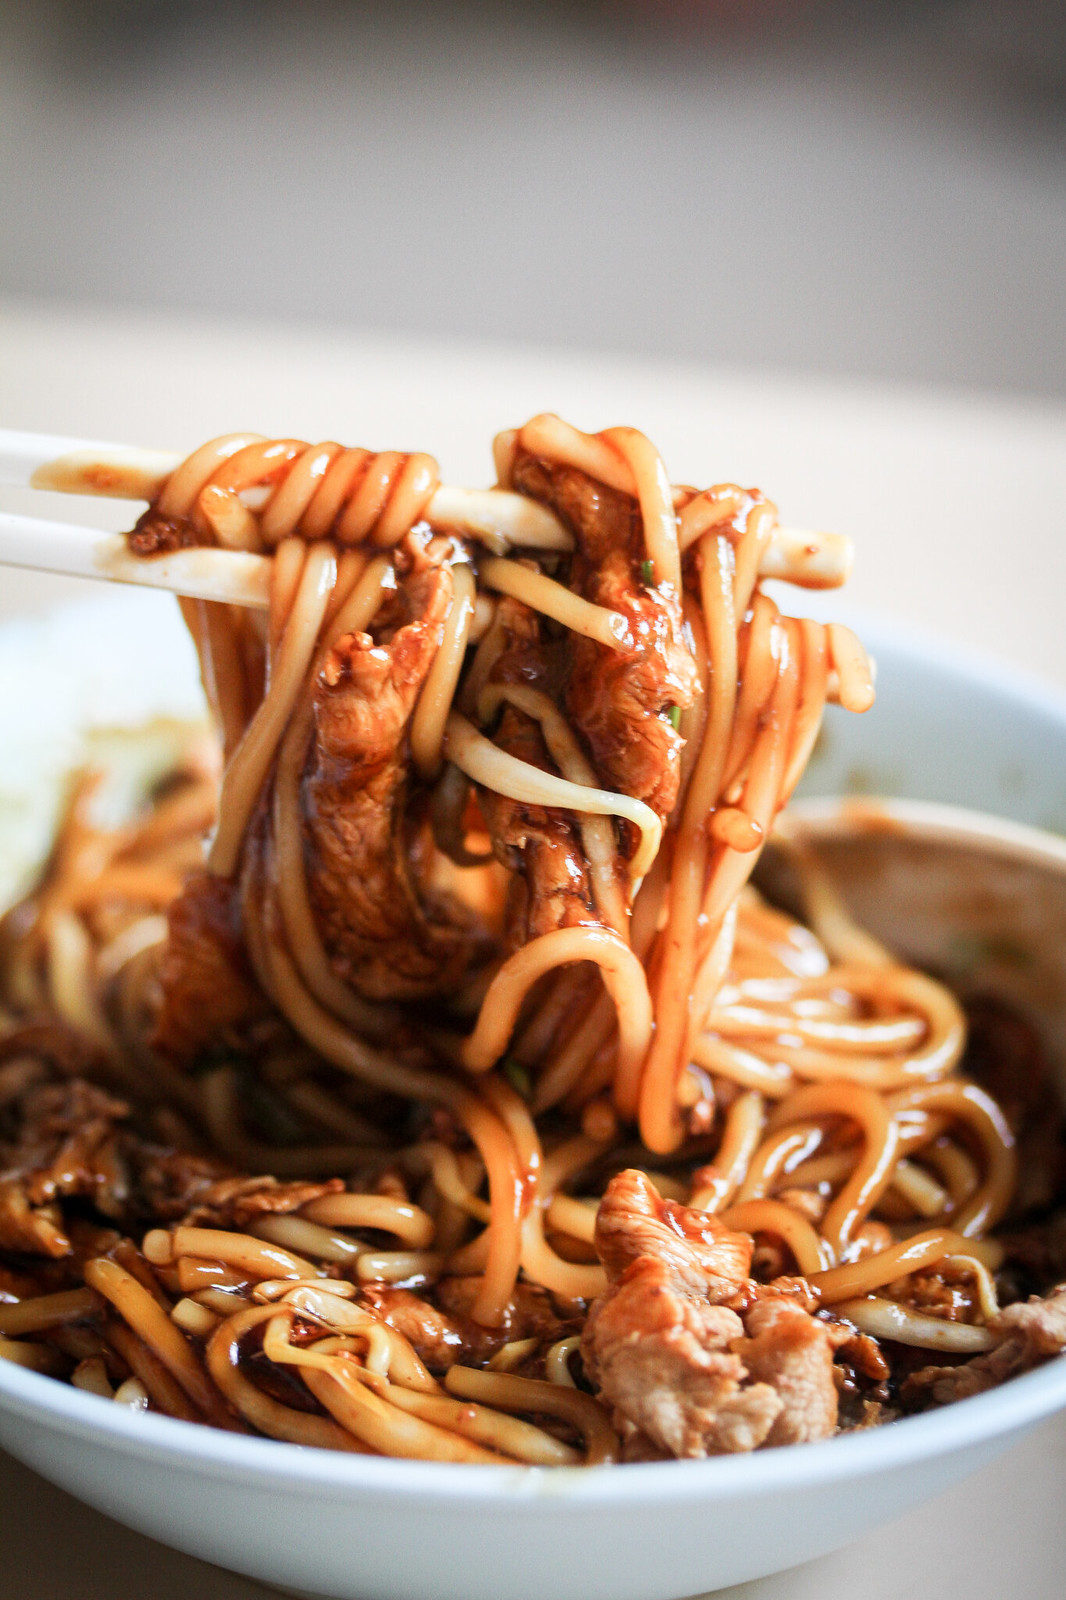 Toa Payoh Hwa Heng Beef Noodle Dry Noodles (Chopsticks)